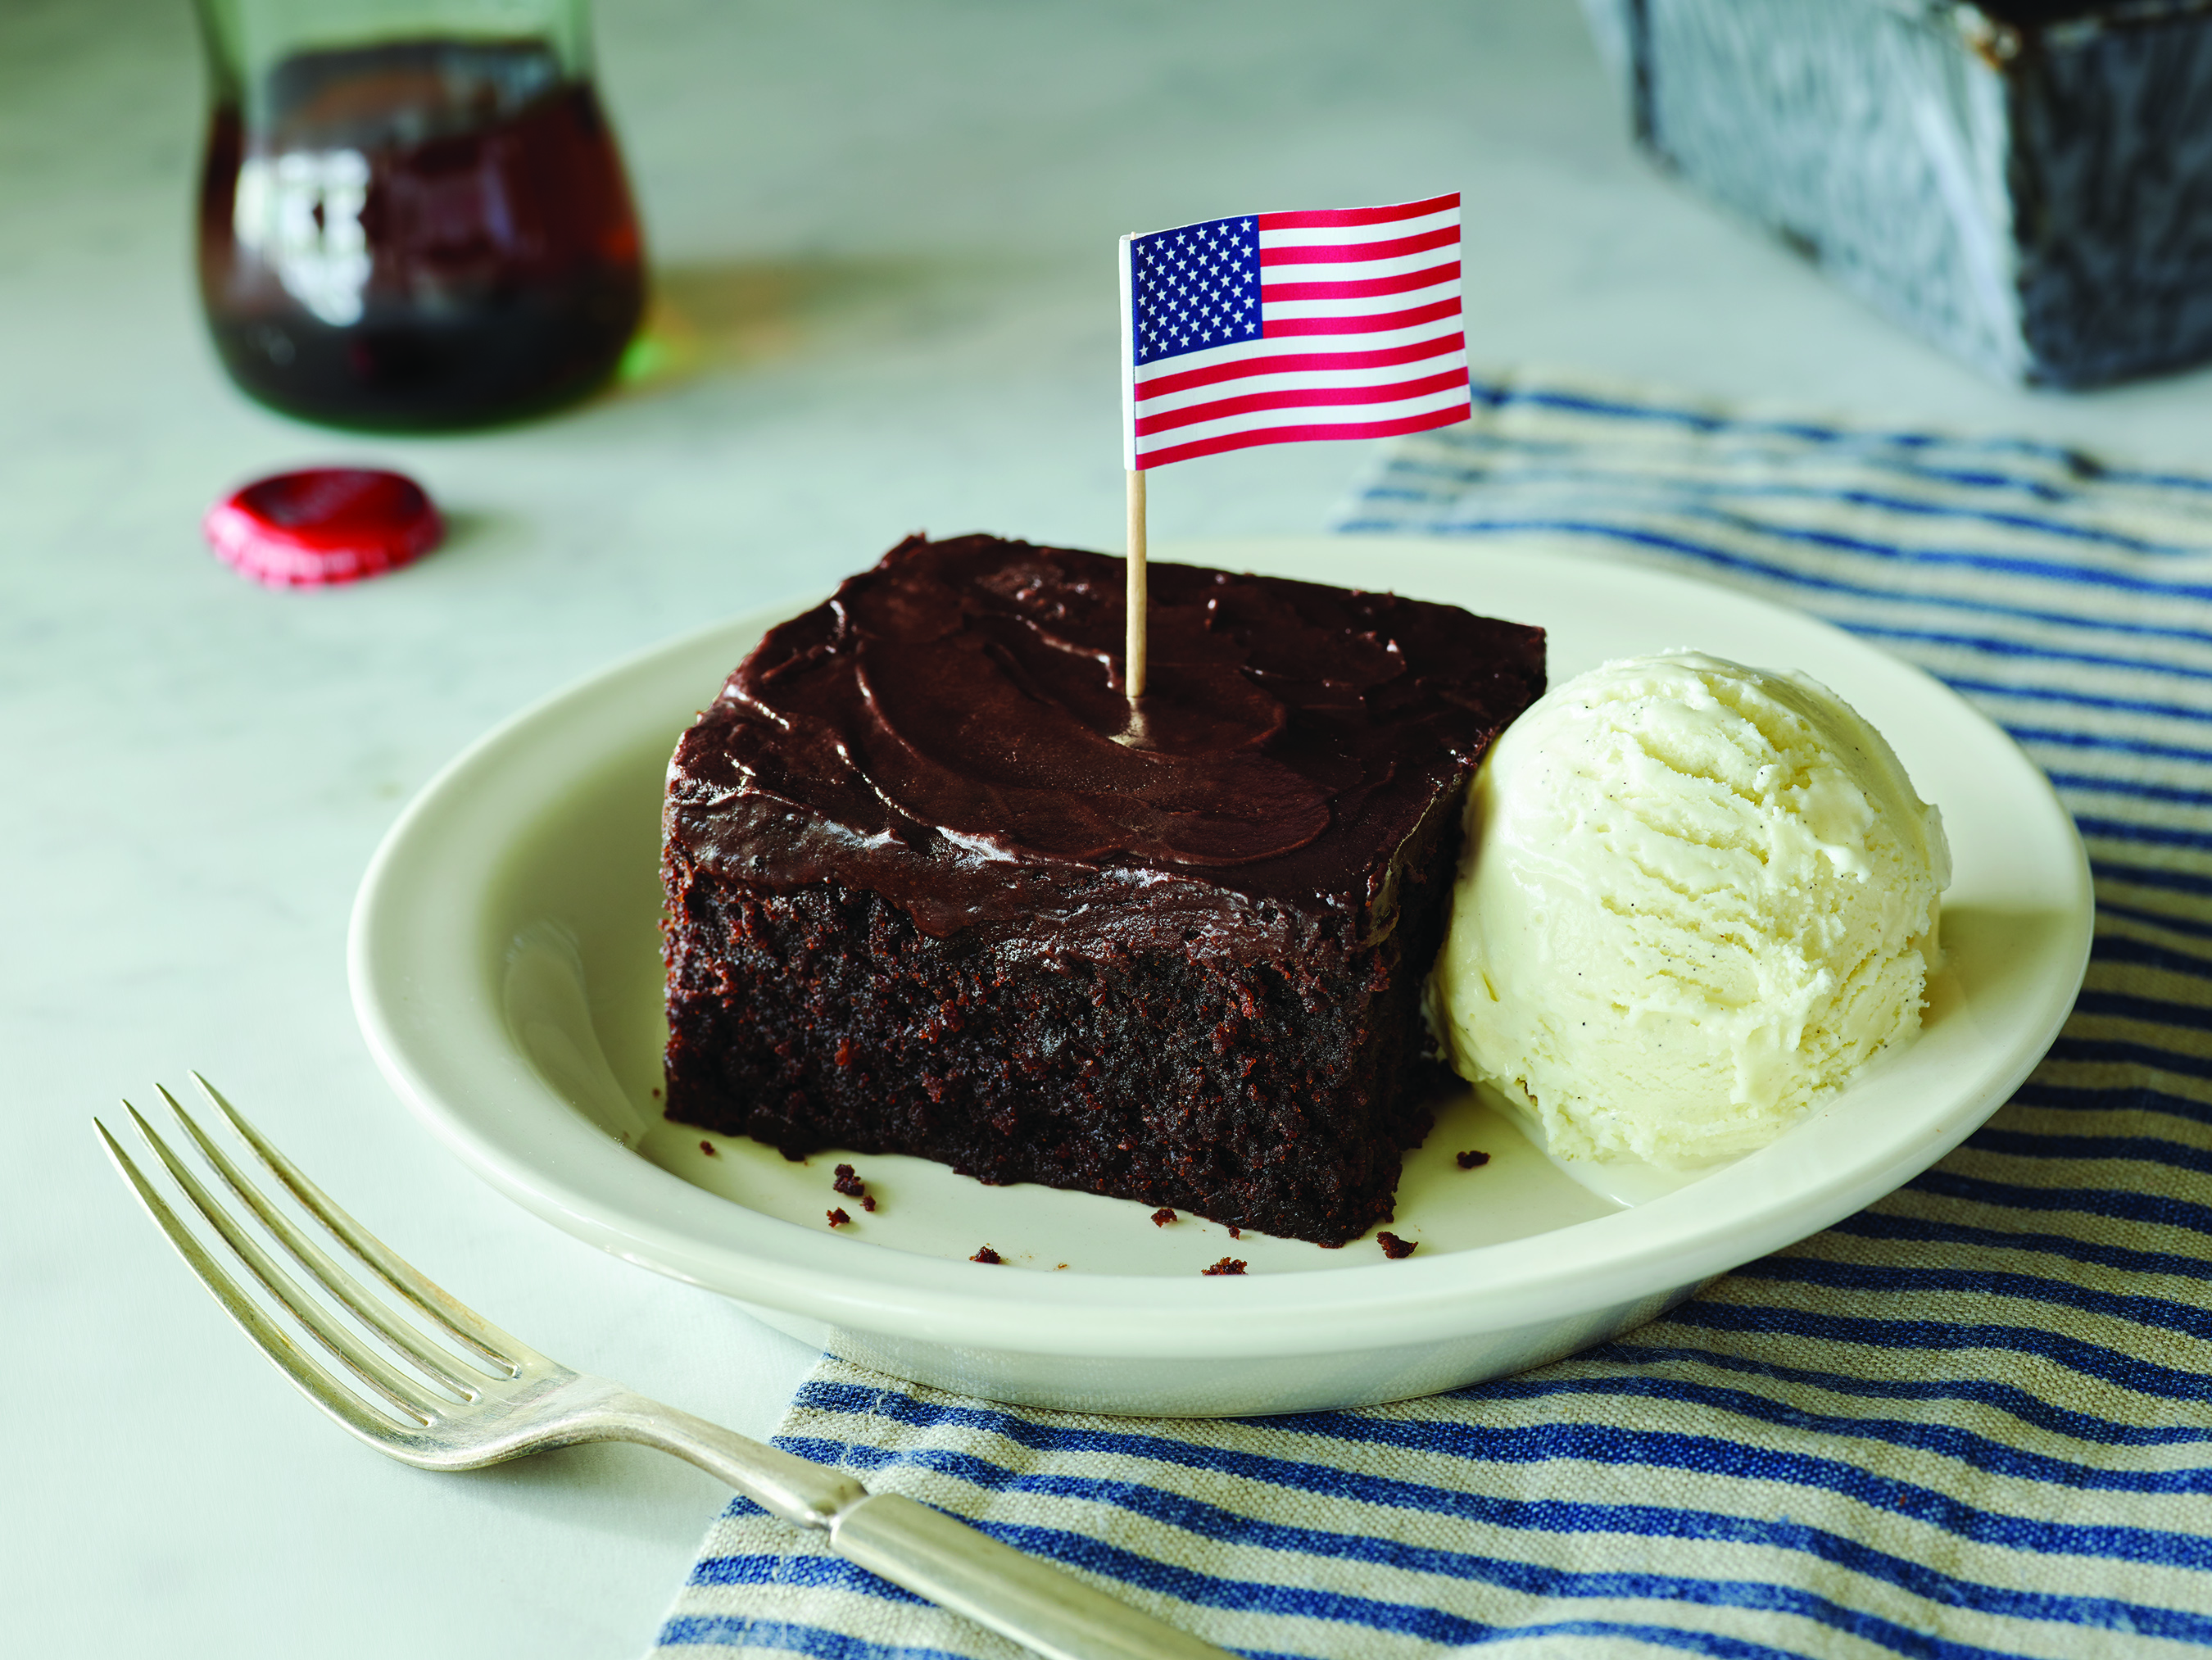 Cracker Barrel will offer vets free dessert on Veterans Day and is rallying support for Operation Homefront Featured